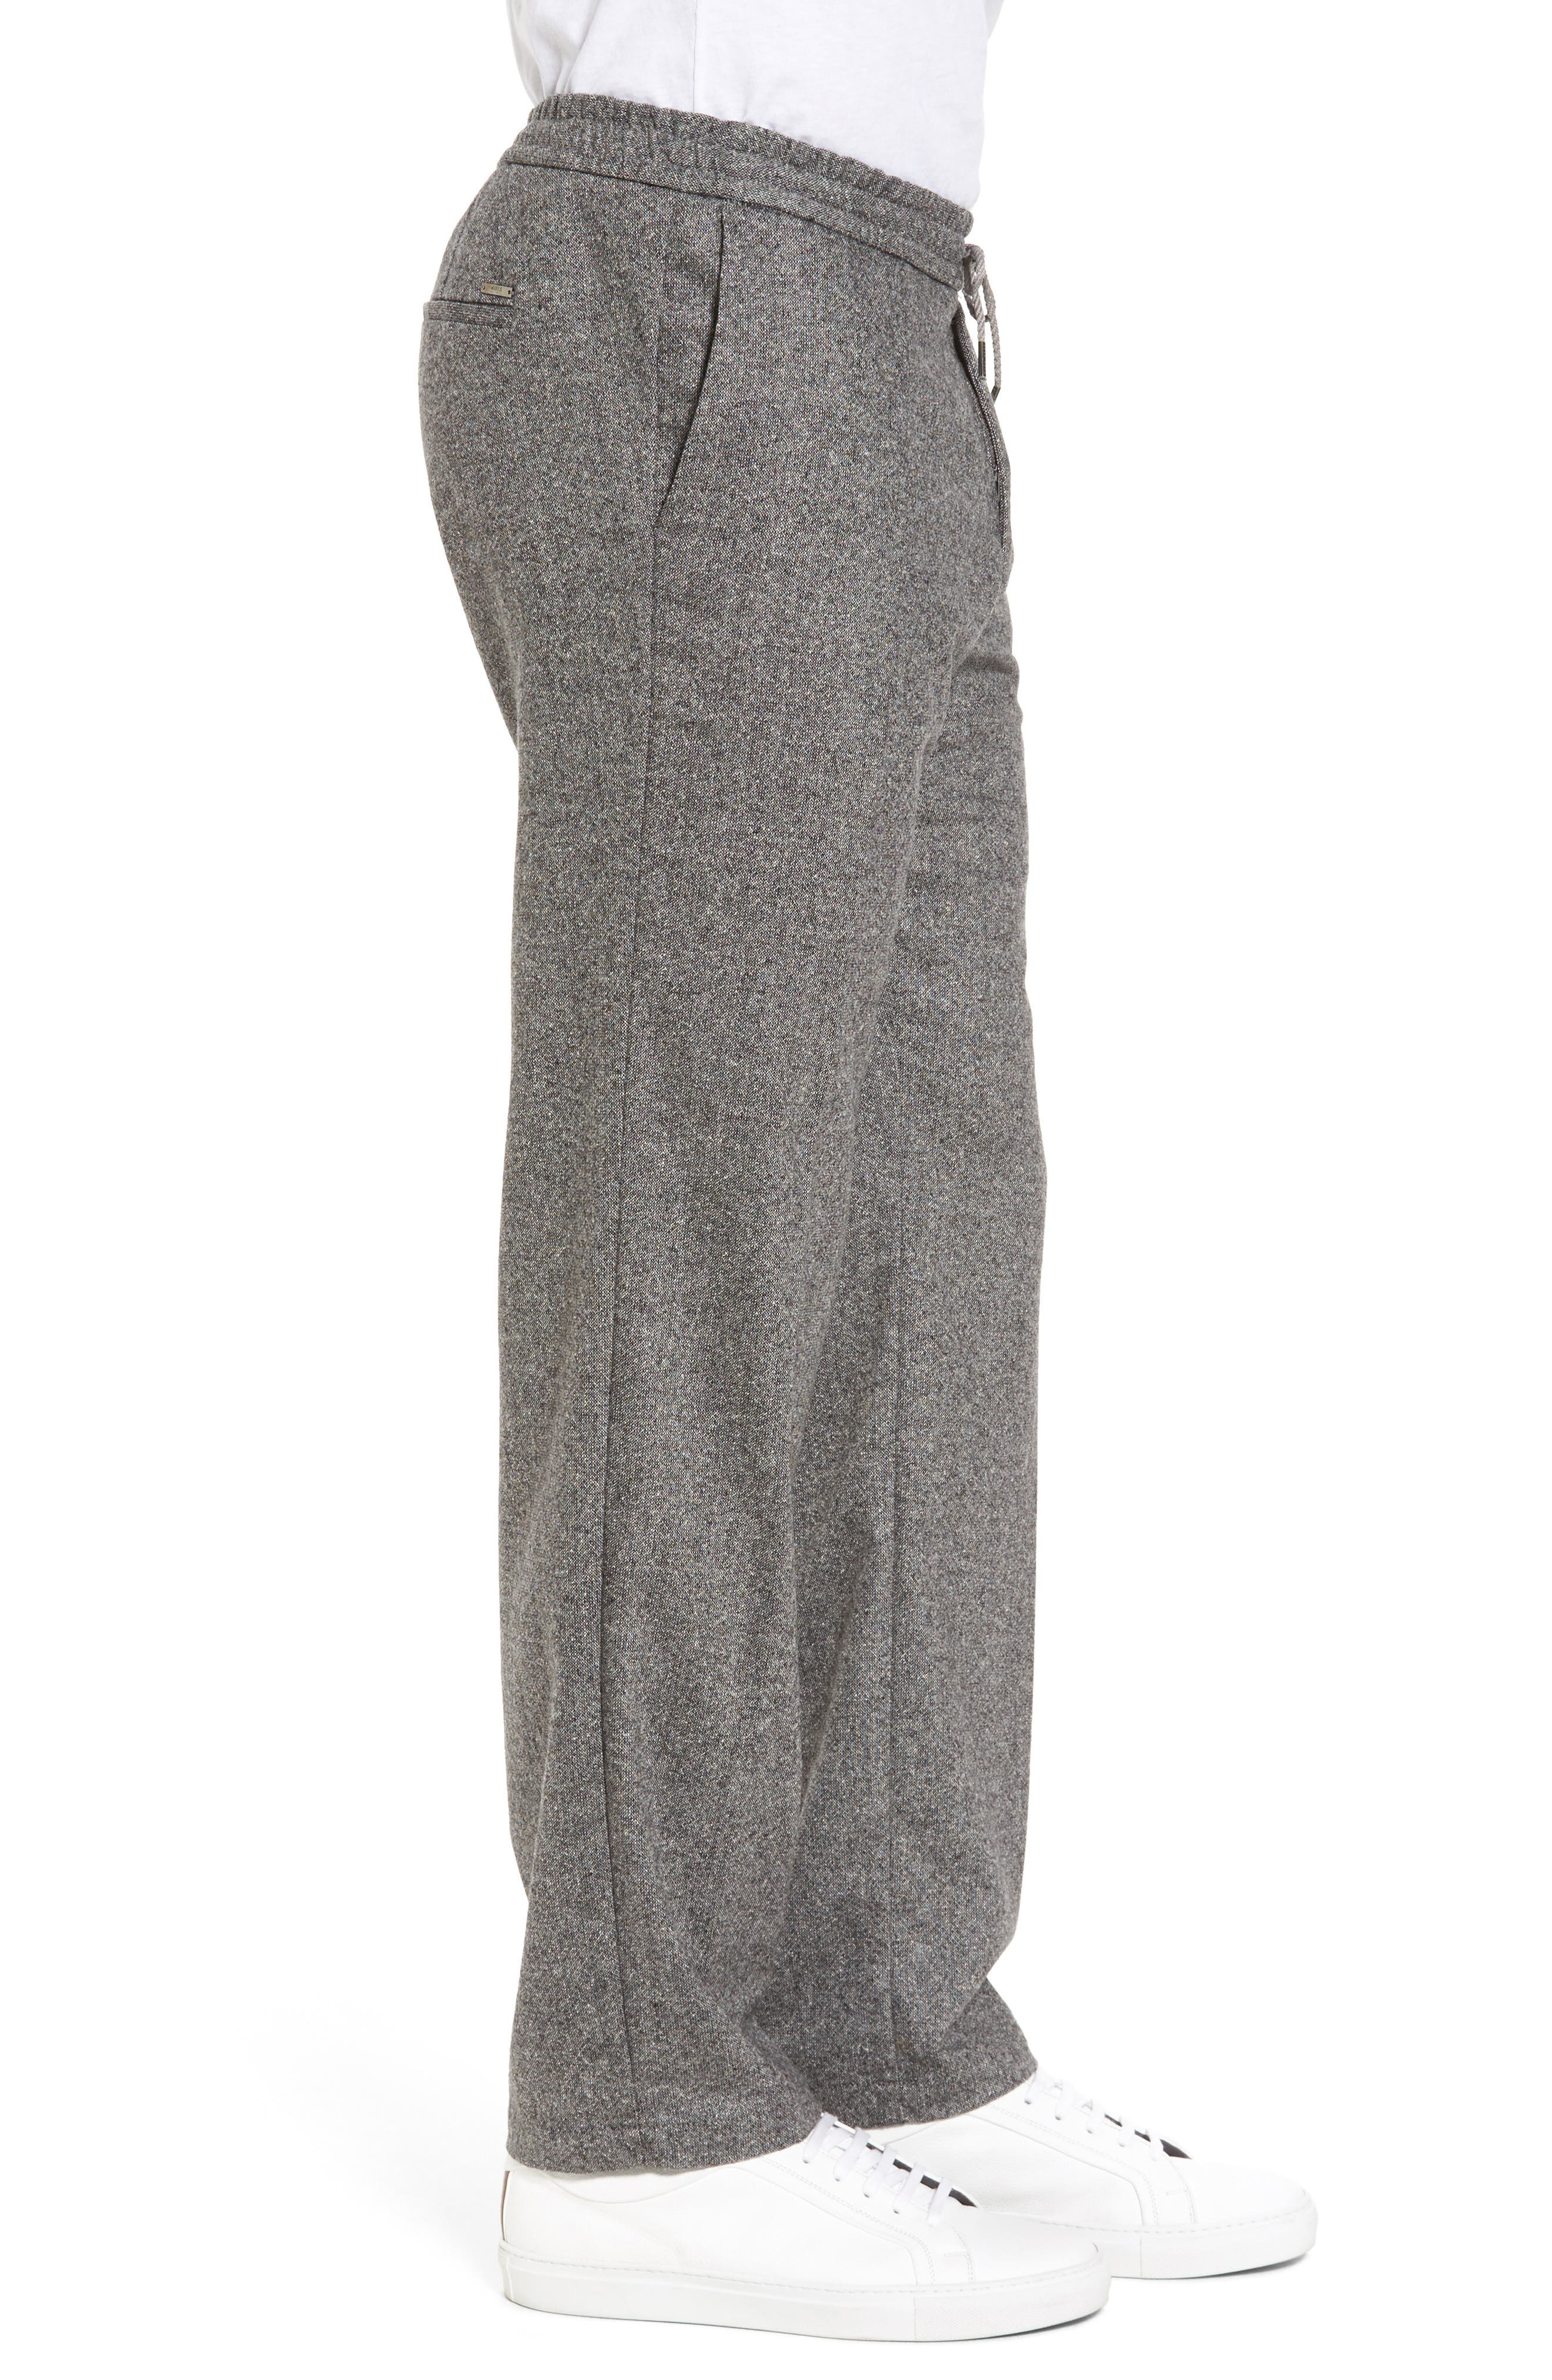 Barne Drawstring Waist Trousers,                             Alternate thumbnail 3, color,                             Grey